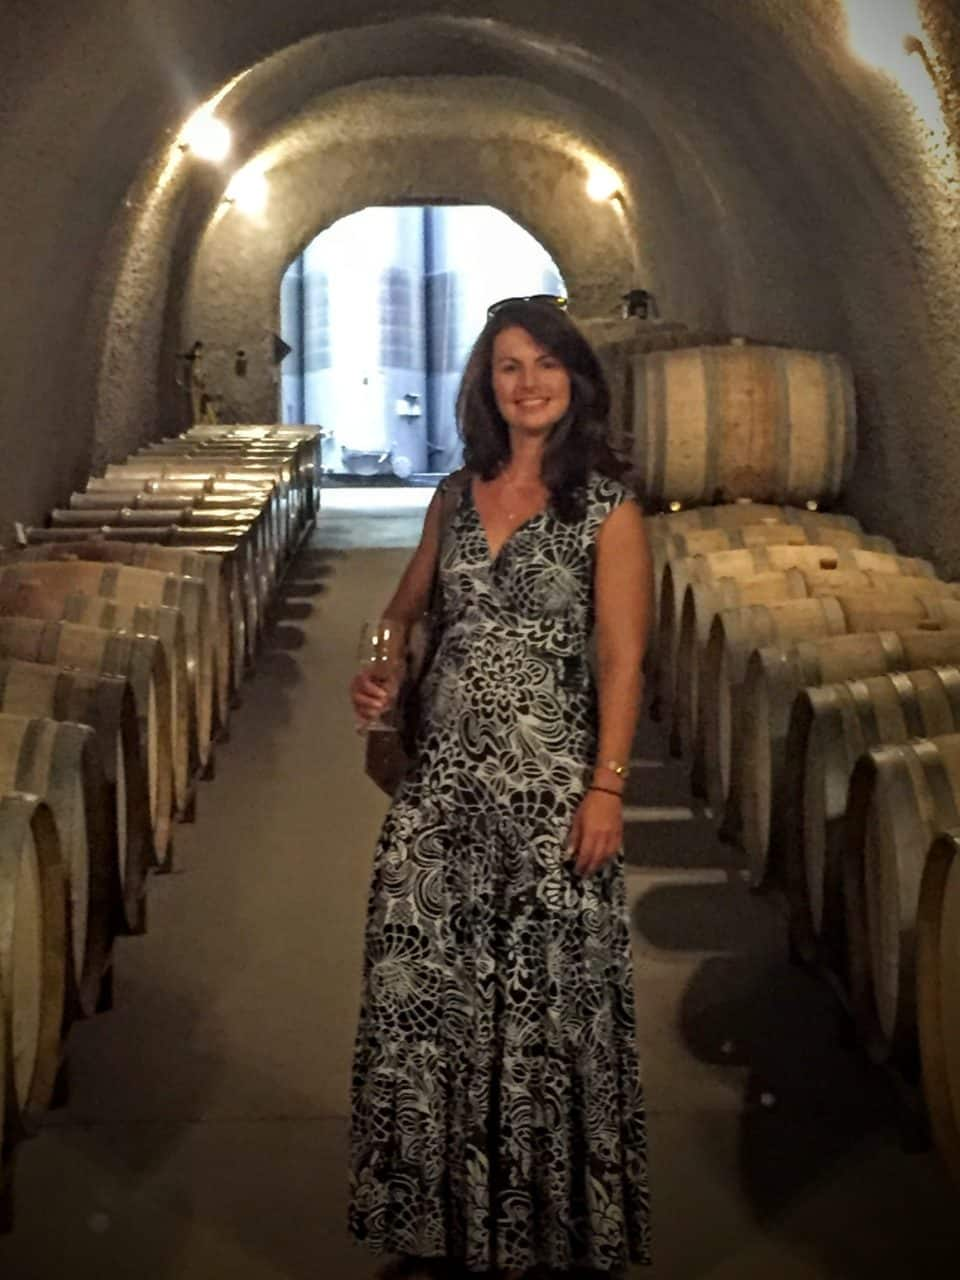 Suz in wine caves in Paso Robles, CA